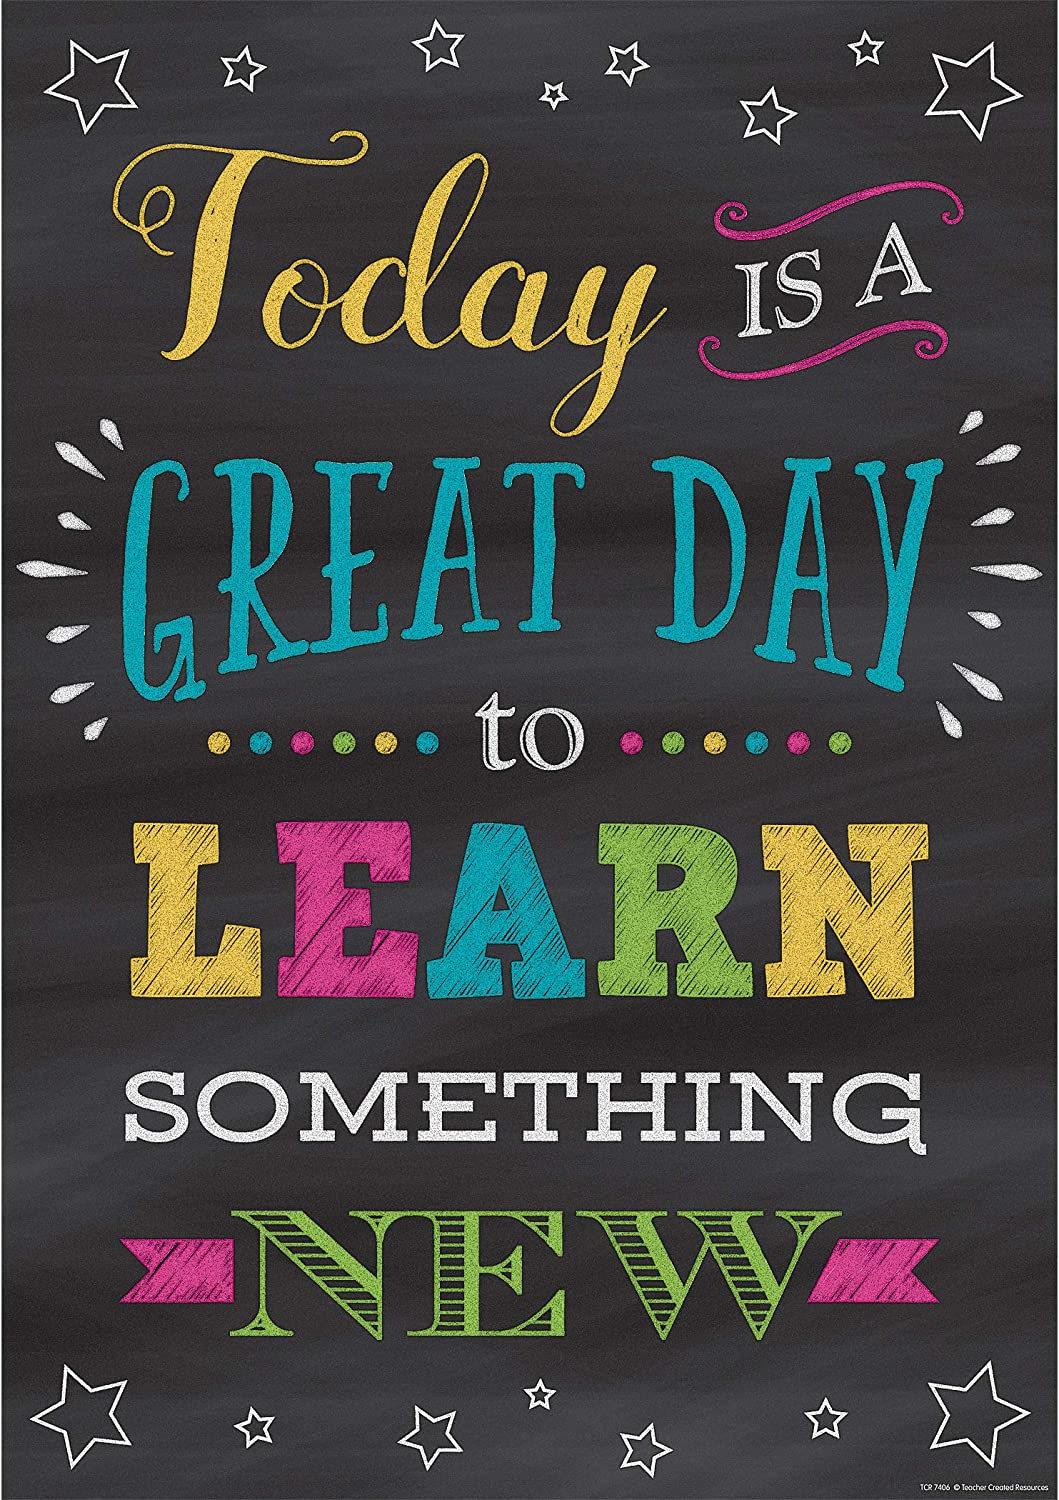 Amazon.com : Today is a Great Day to Learn Something New Positive Poster :  Office Products